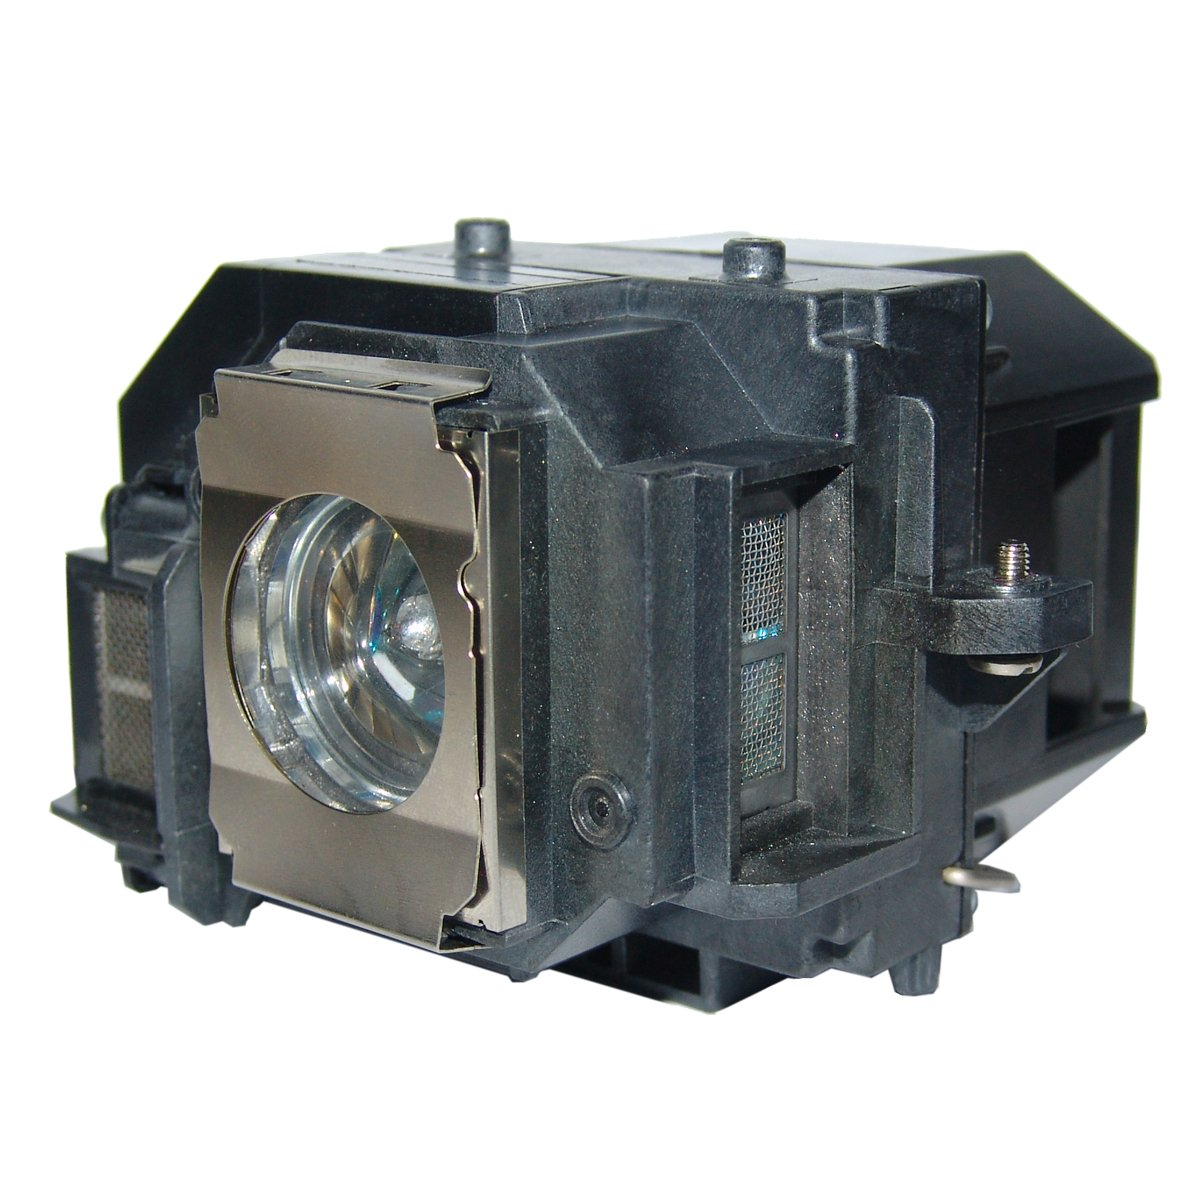 AuraBeam Epson EX7200 Projector Replacement Lamp with Housing ABH-Epson-EX7200